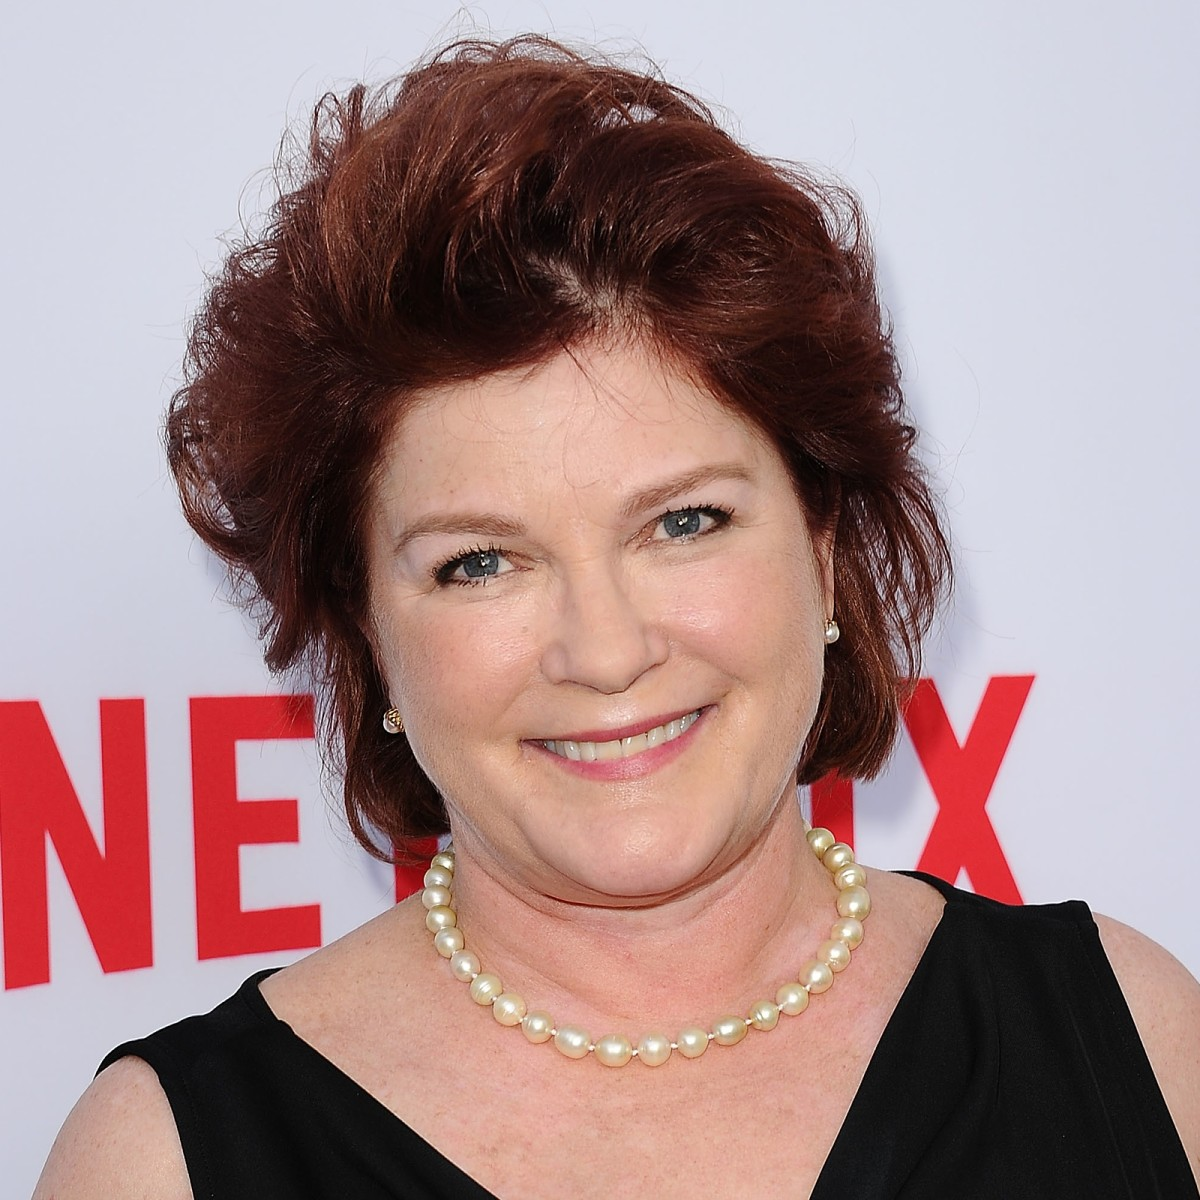 Kate Mulgrew photo via Getty Images